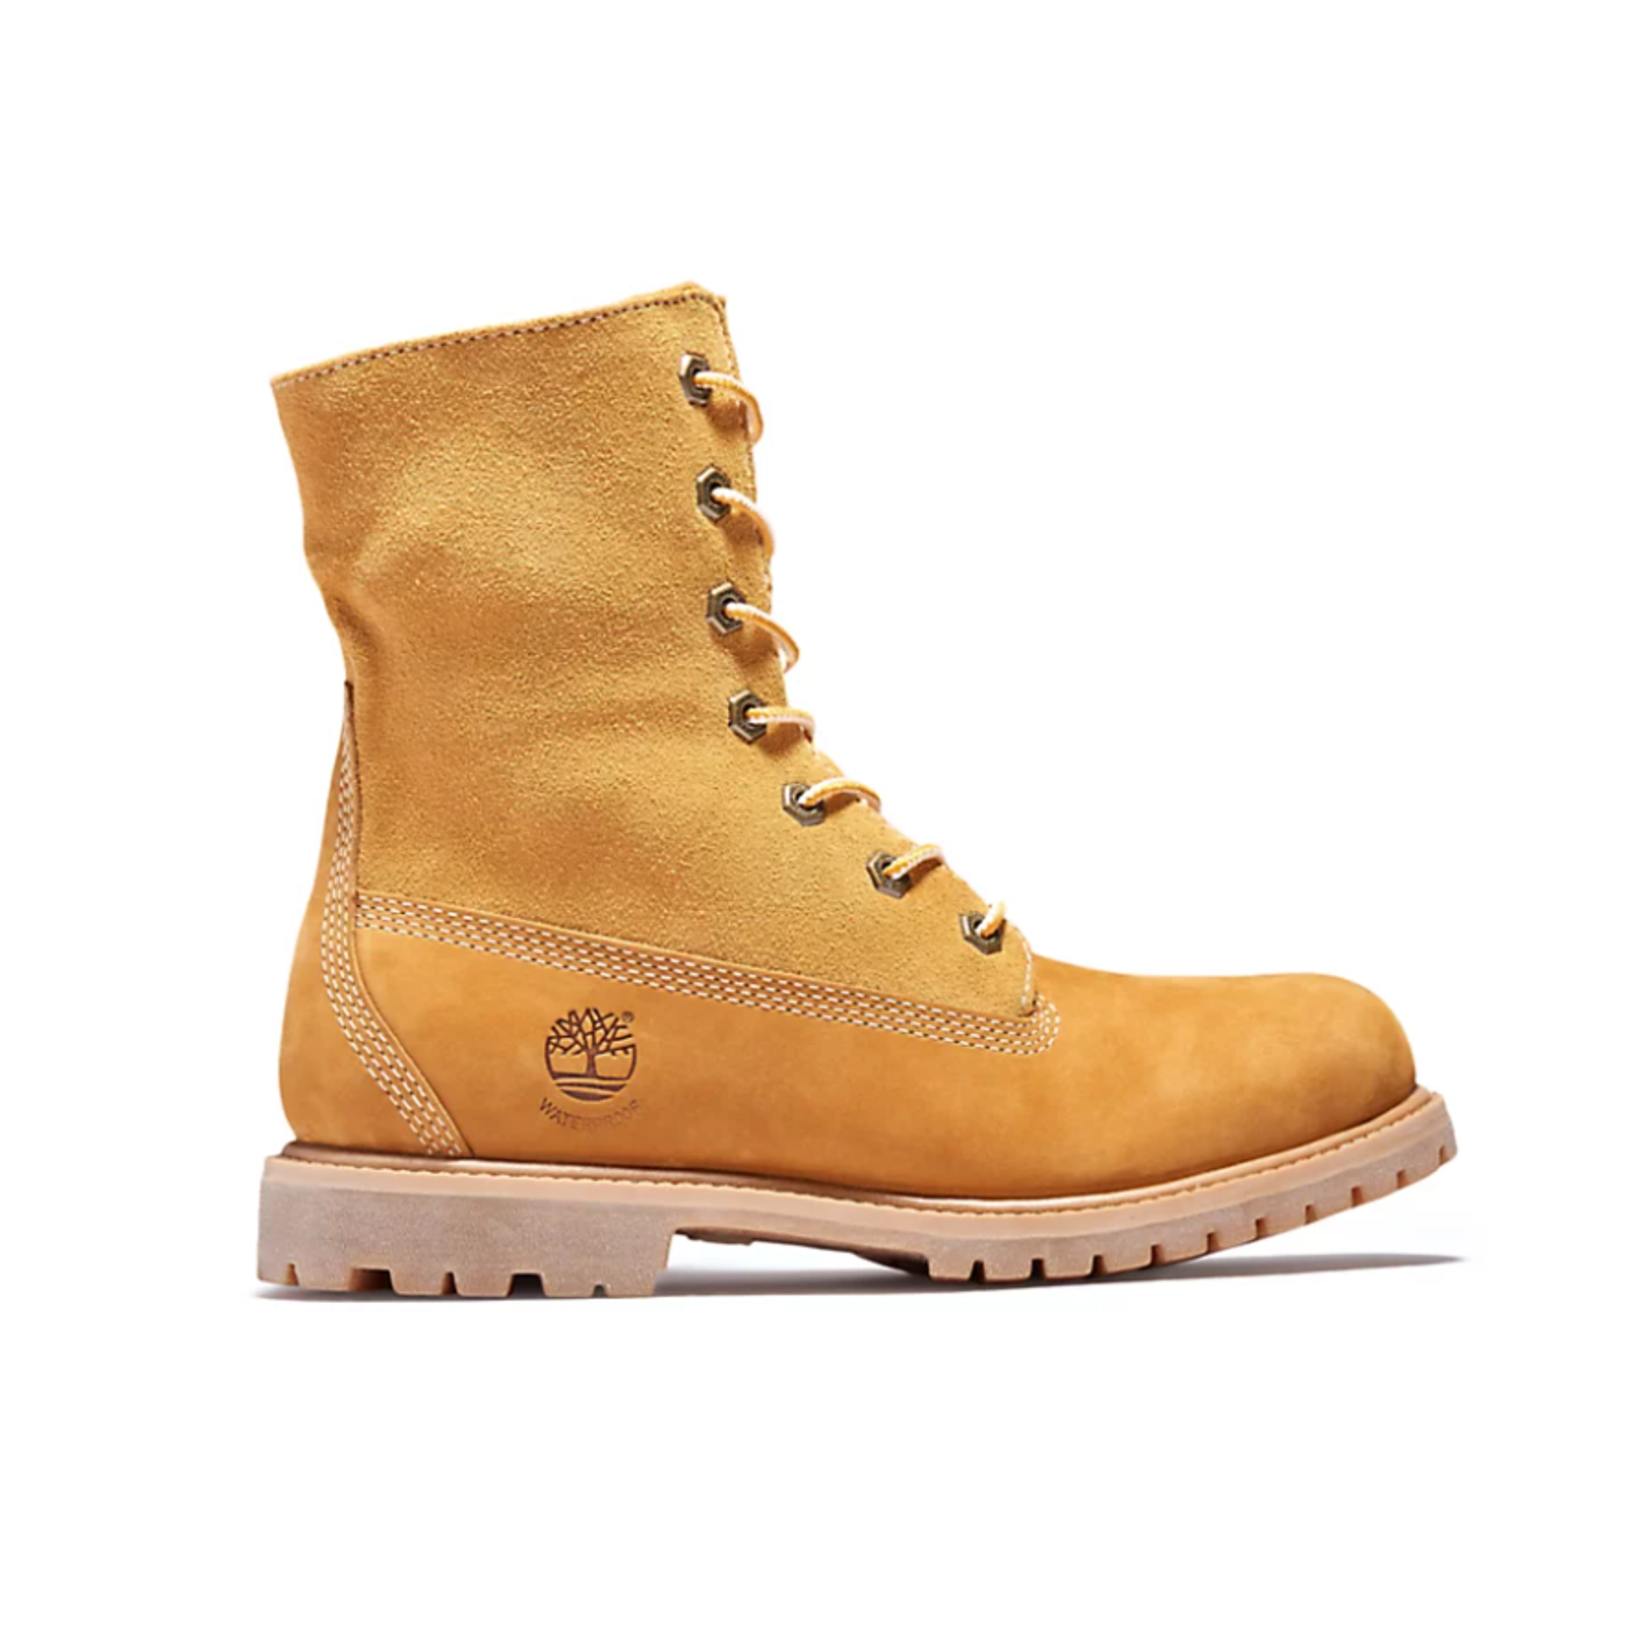 Timberland ROLL-TOP BOOT FOR WOMEN IN YELLOW